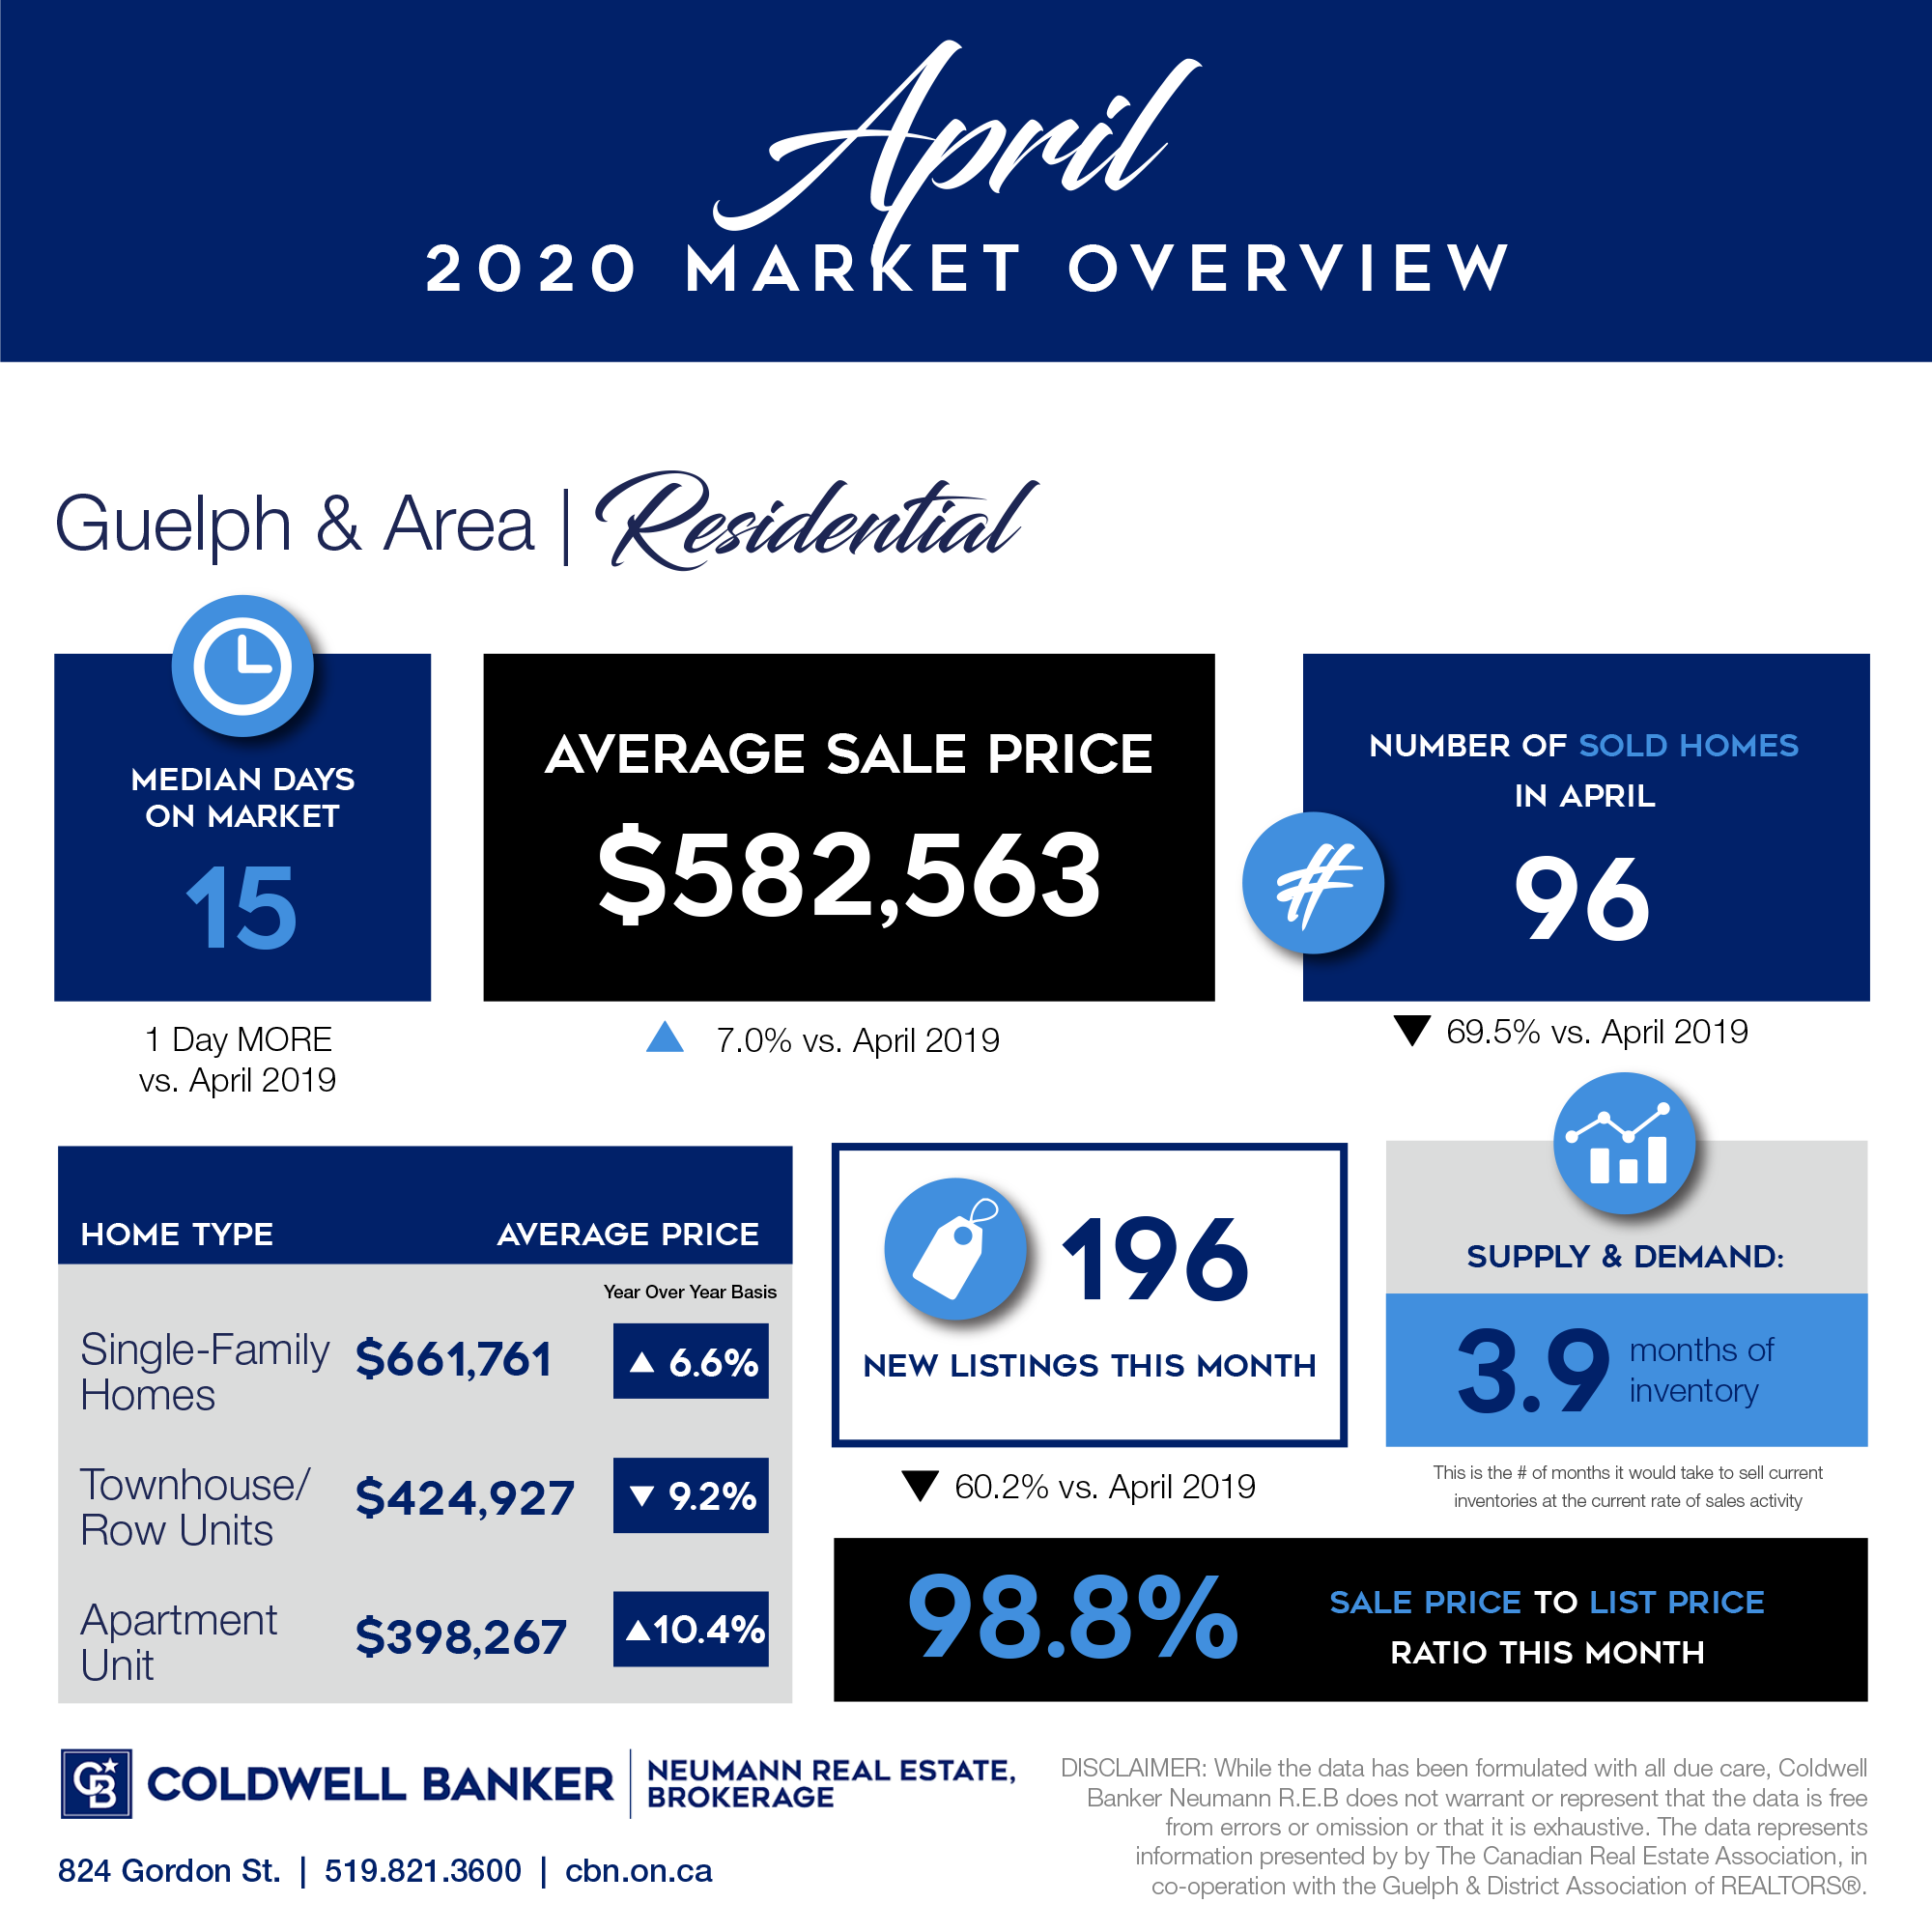 April 2020 Residential Market Report for Guelph & Area